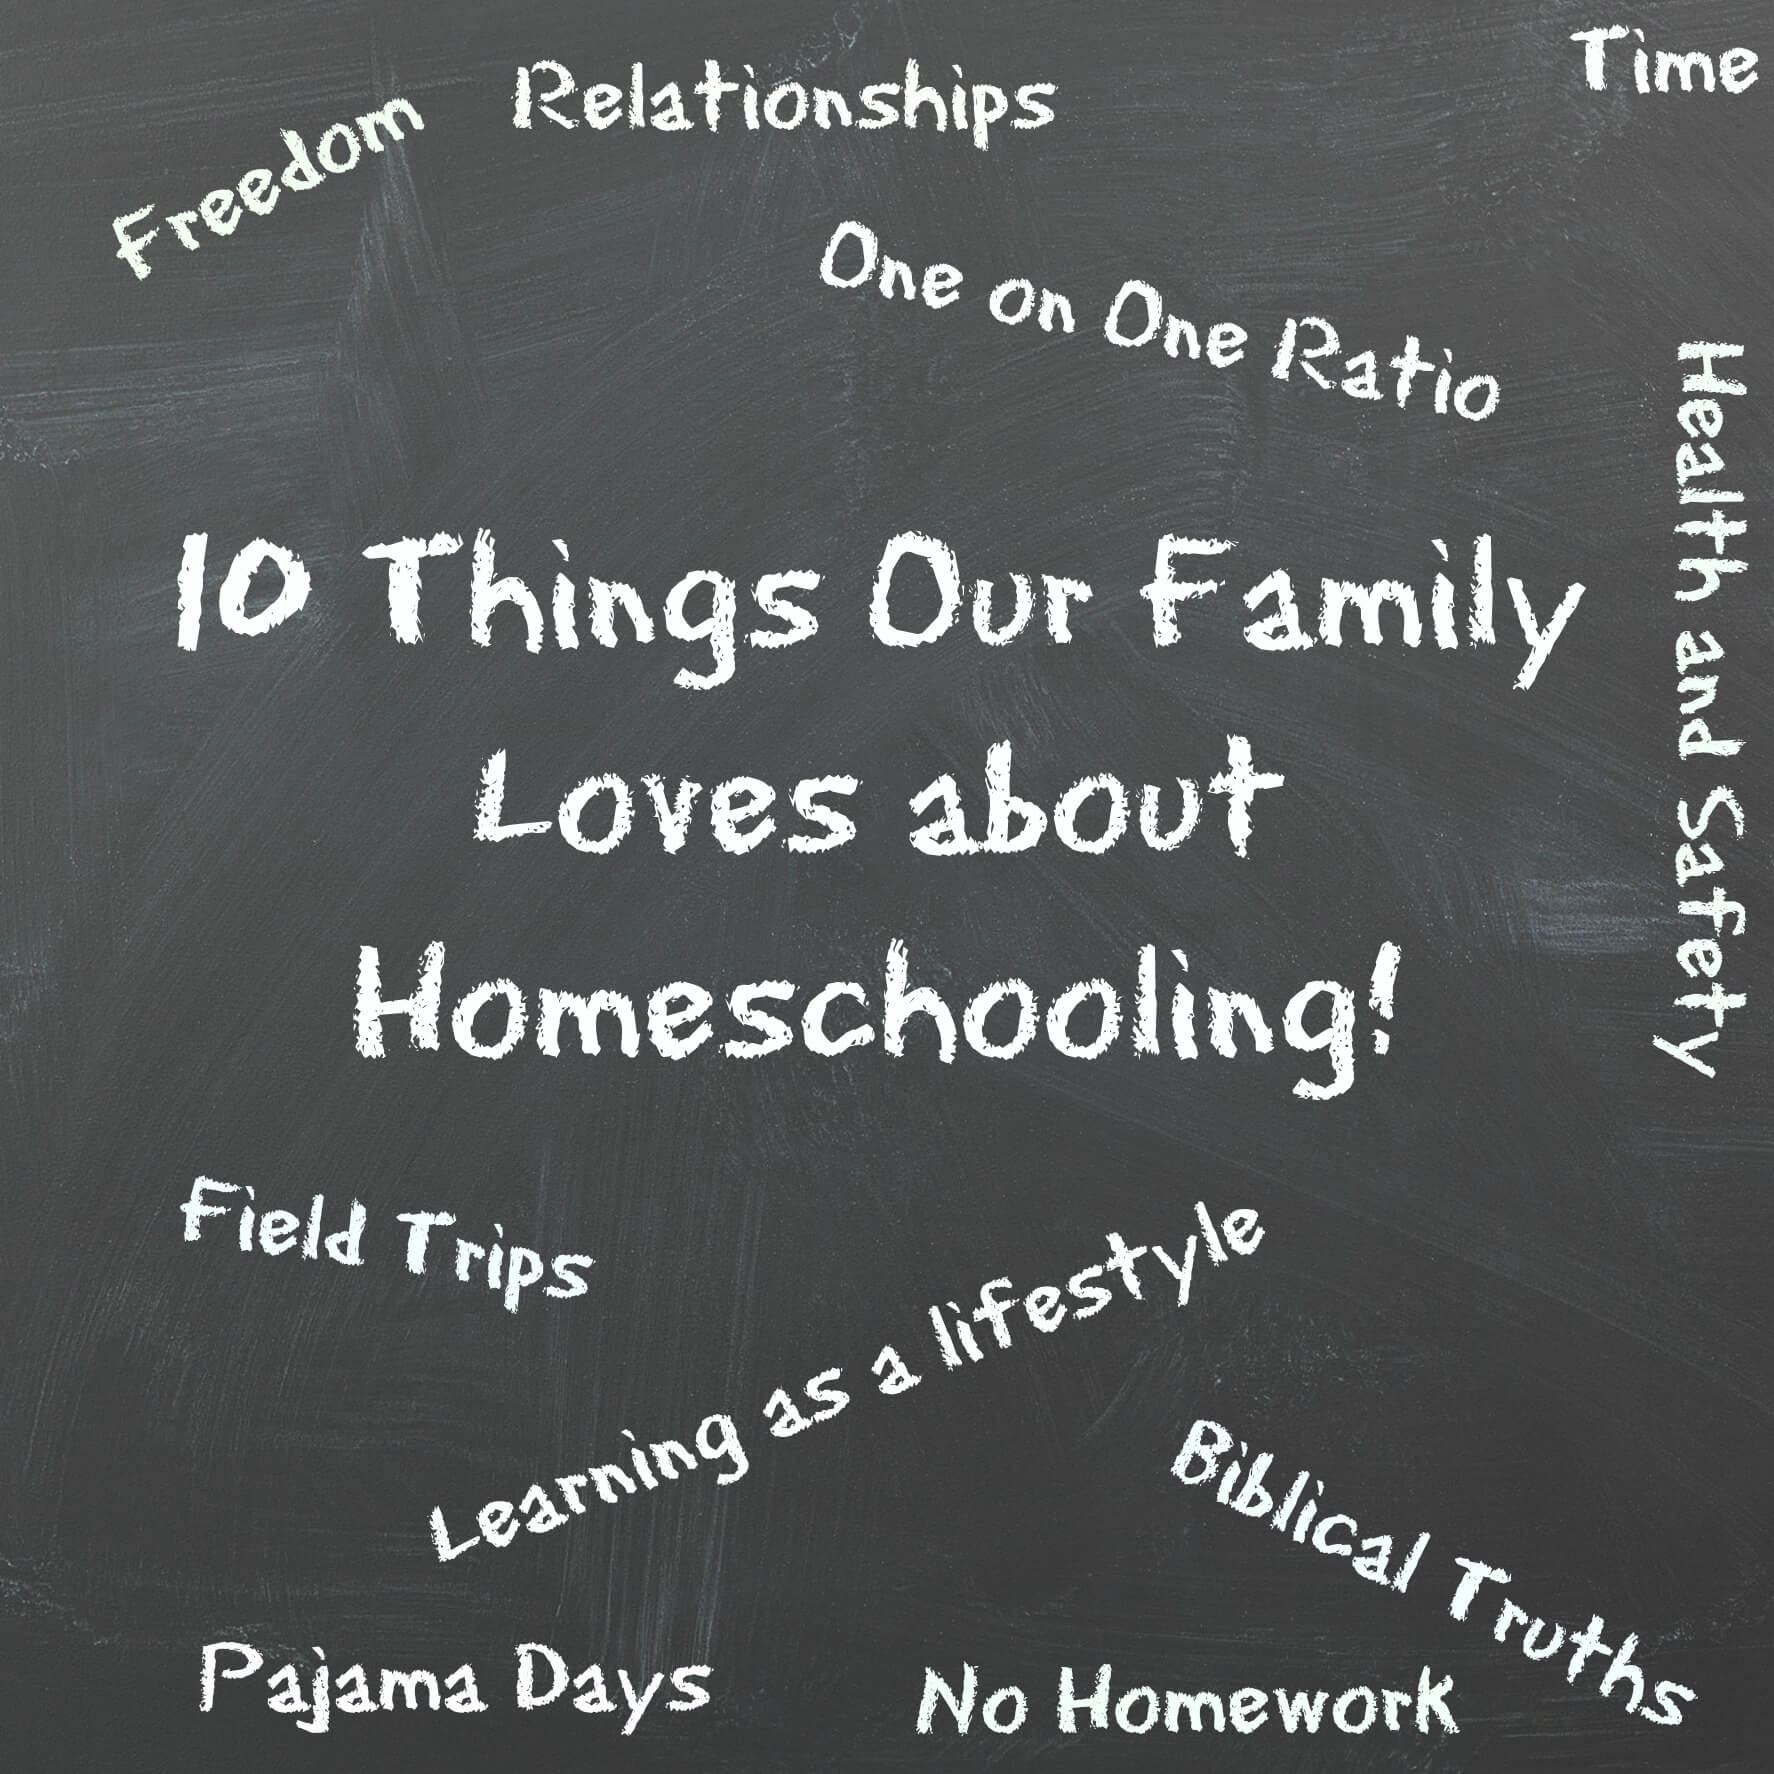 10 Things our Family LOVES About Homeschooling